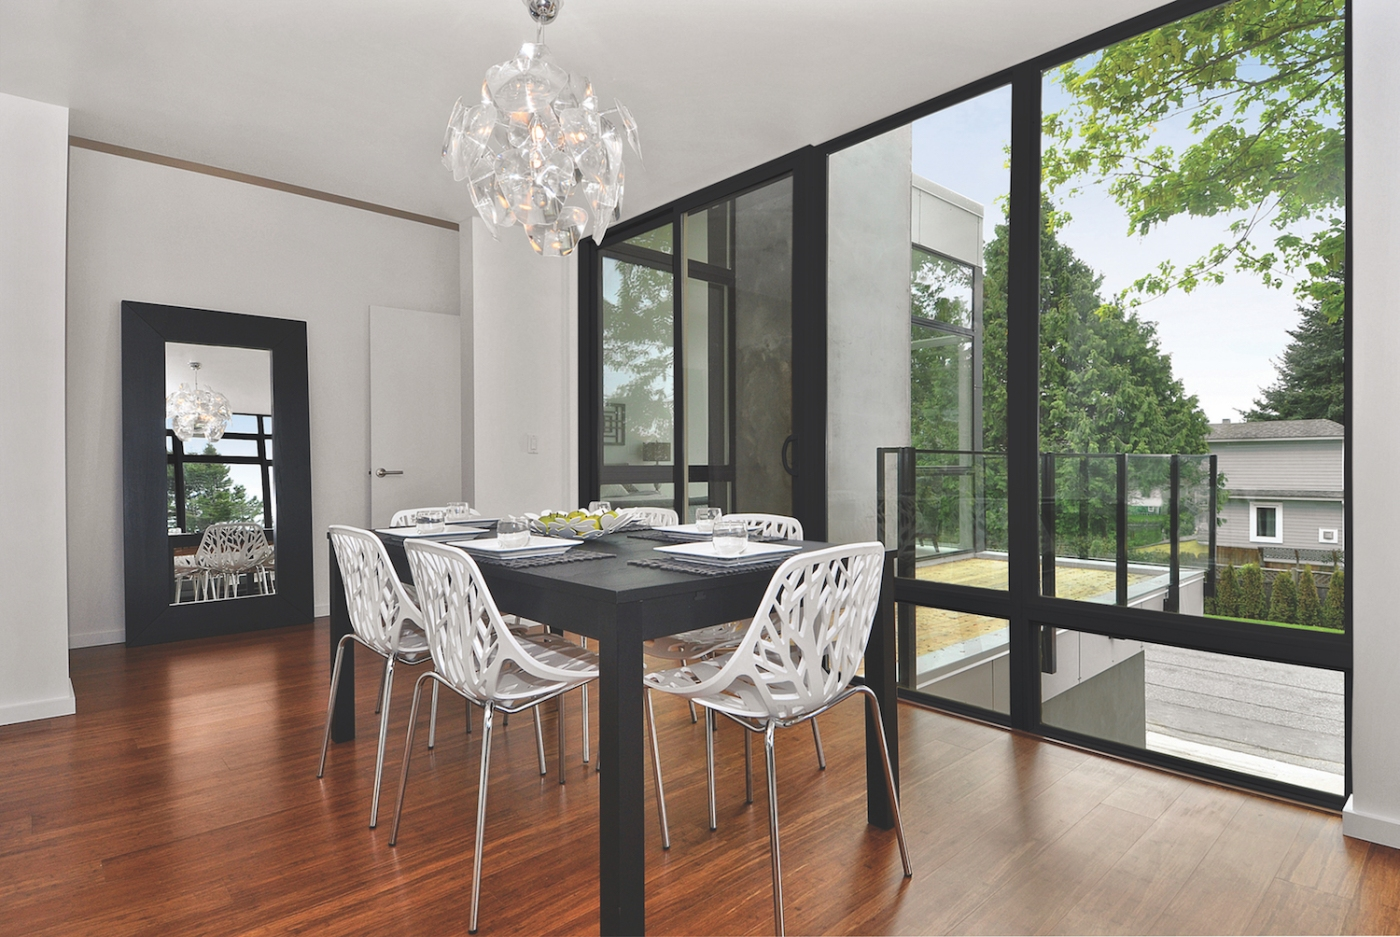 All Ultrex Patio Door Black.jpg